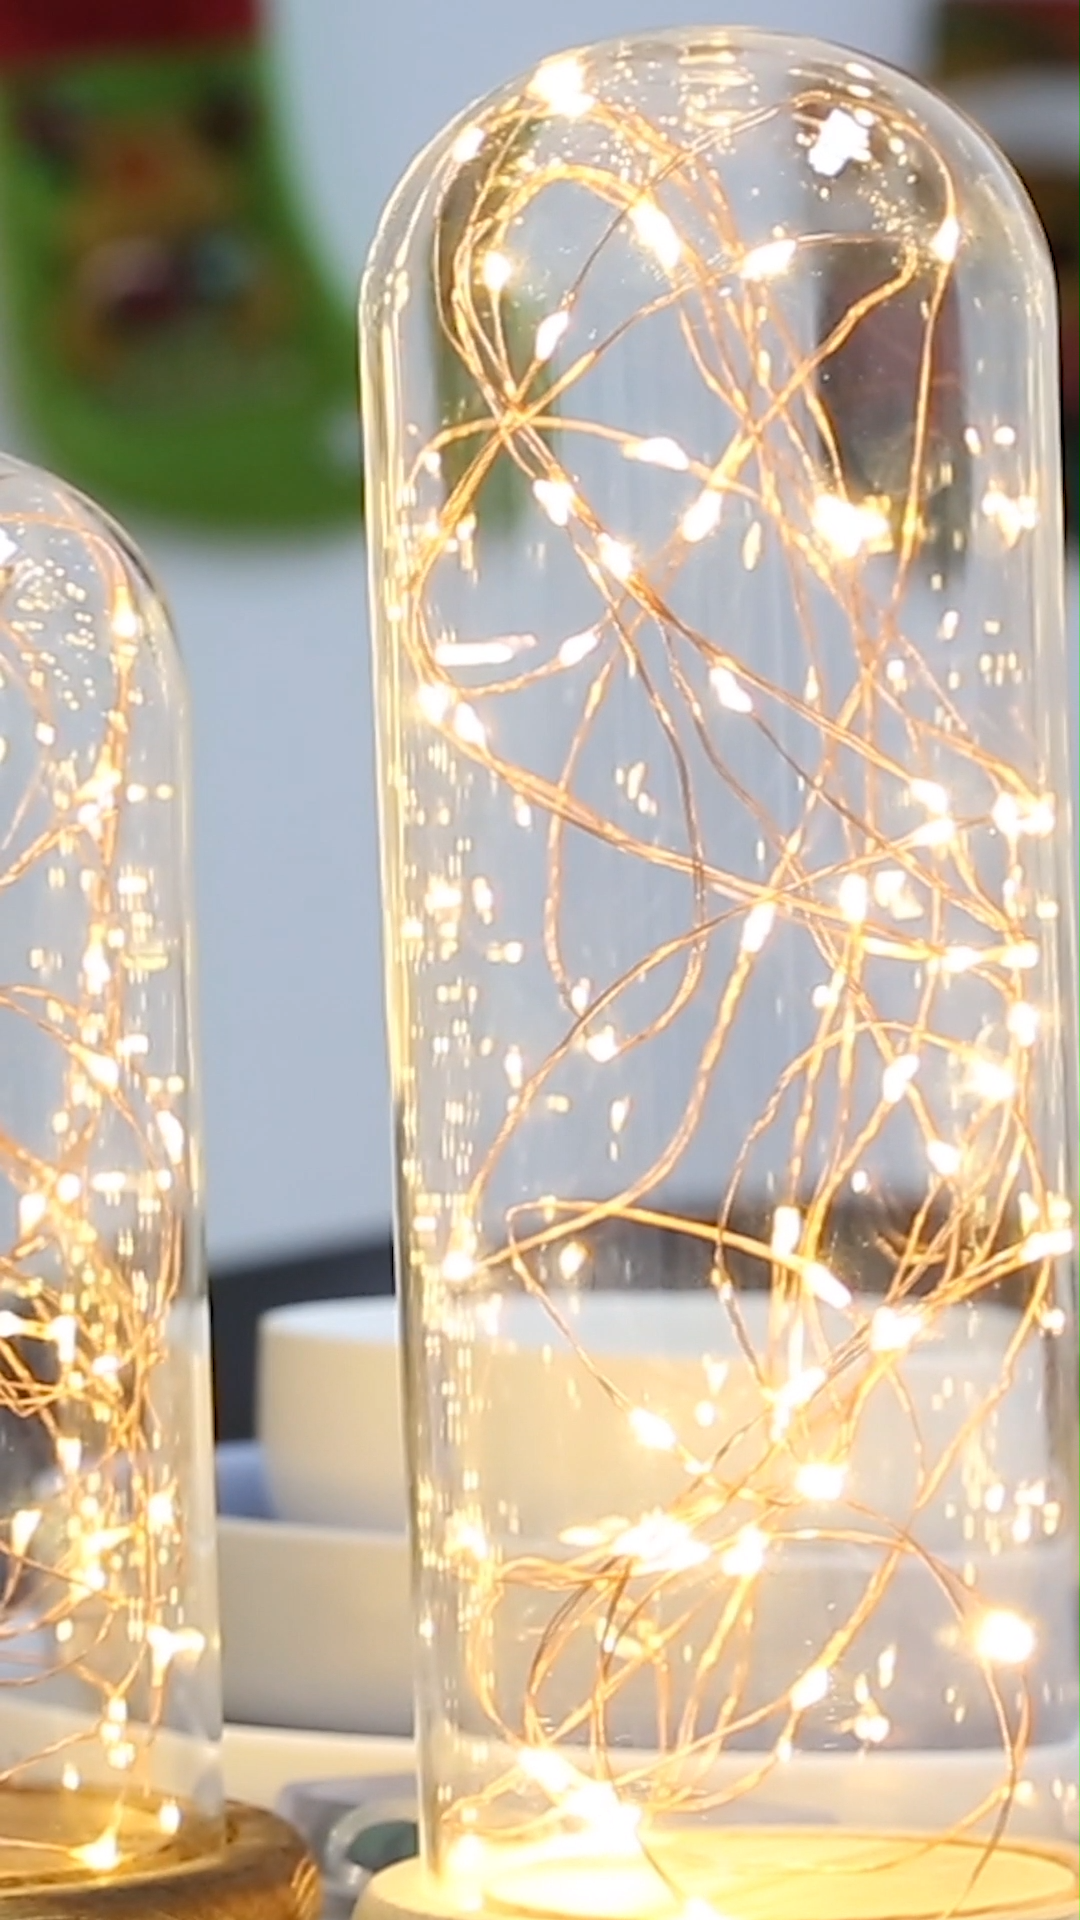 Watch the video to find out how to make Copper Wire Light domes! They create the perfect ambiance in any room!